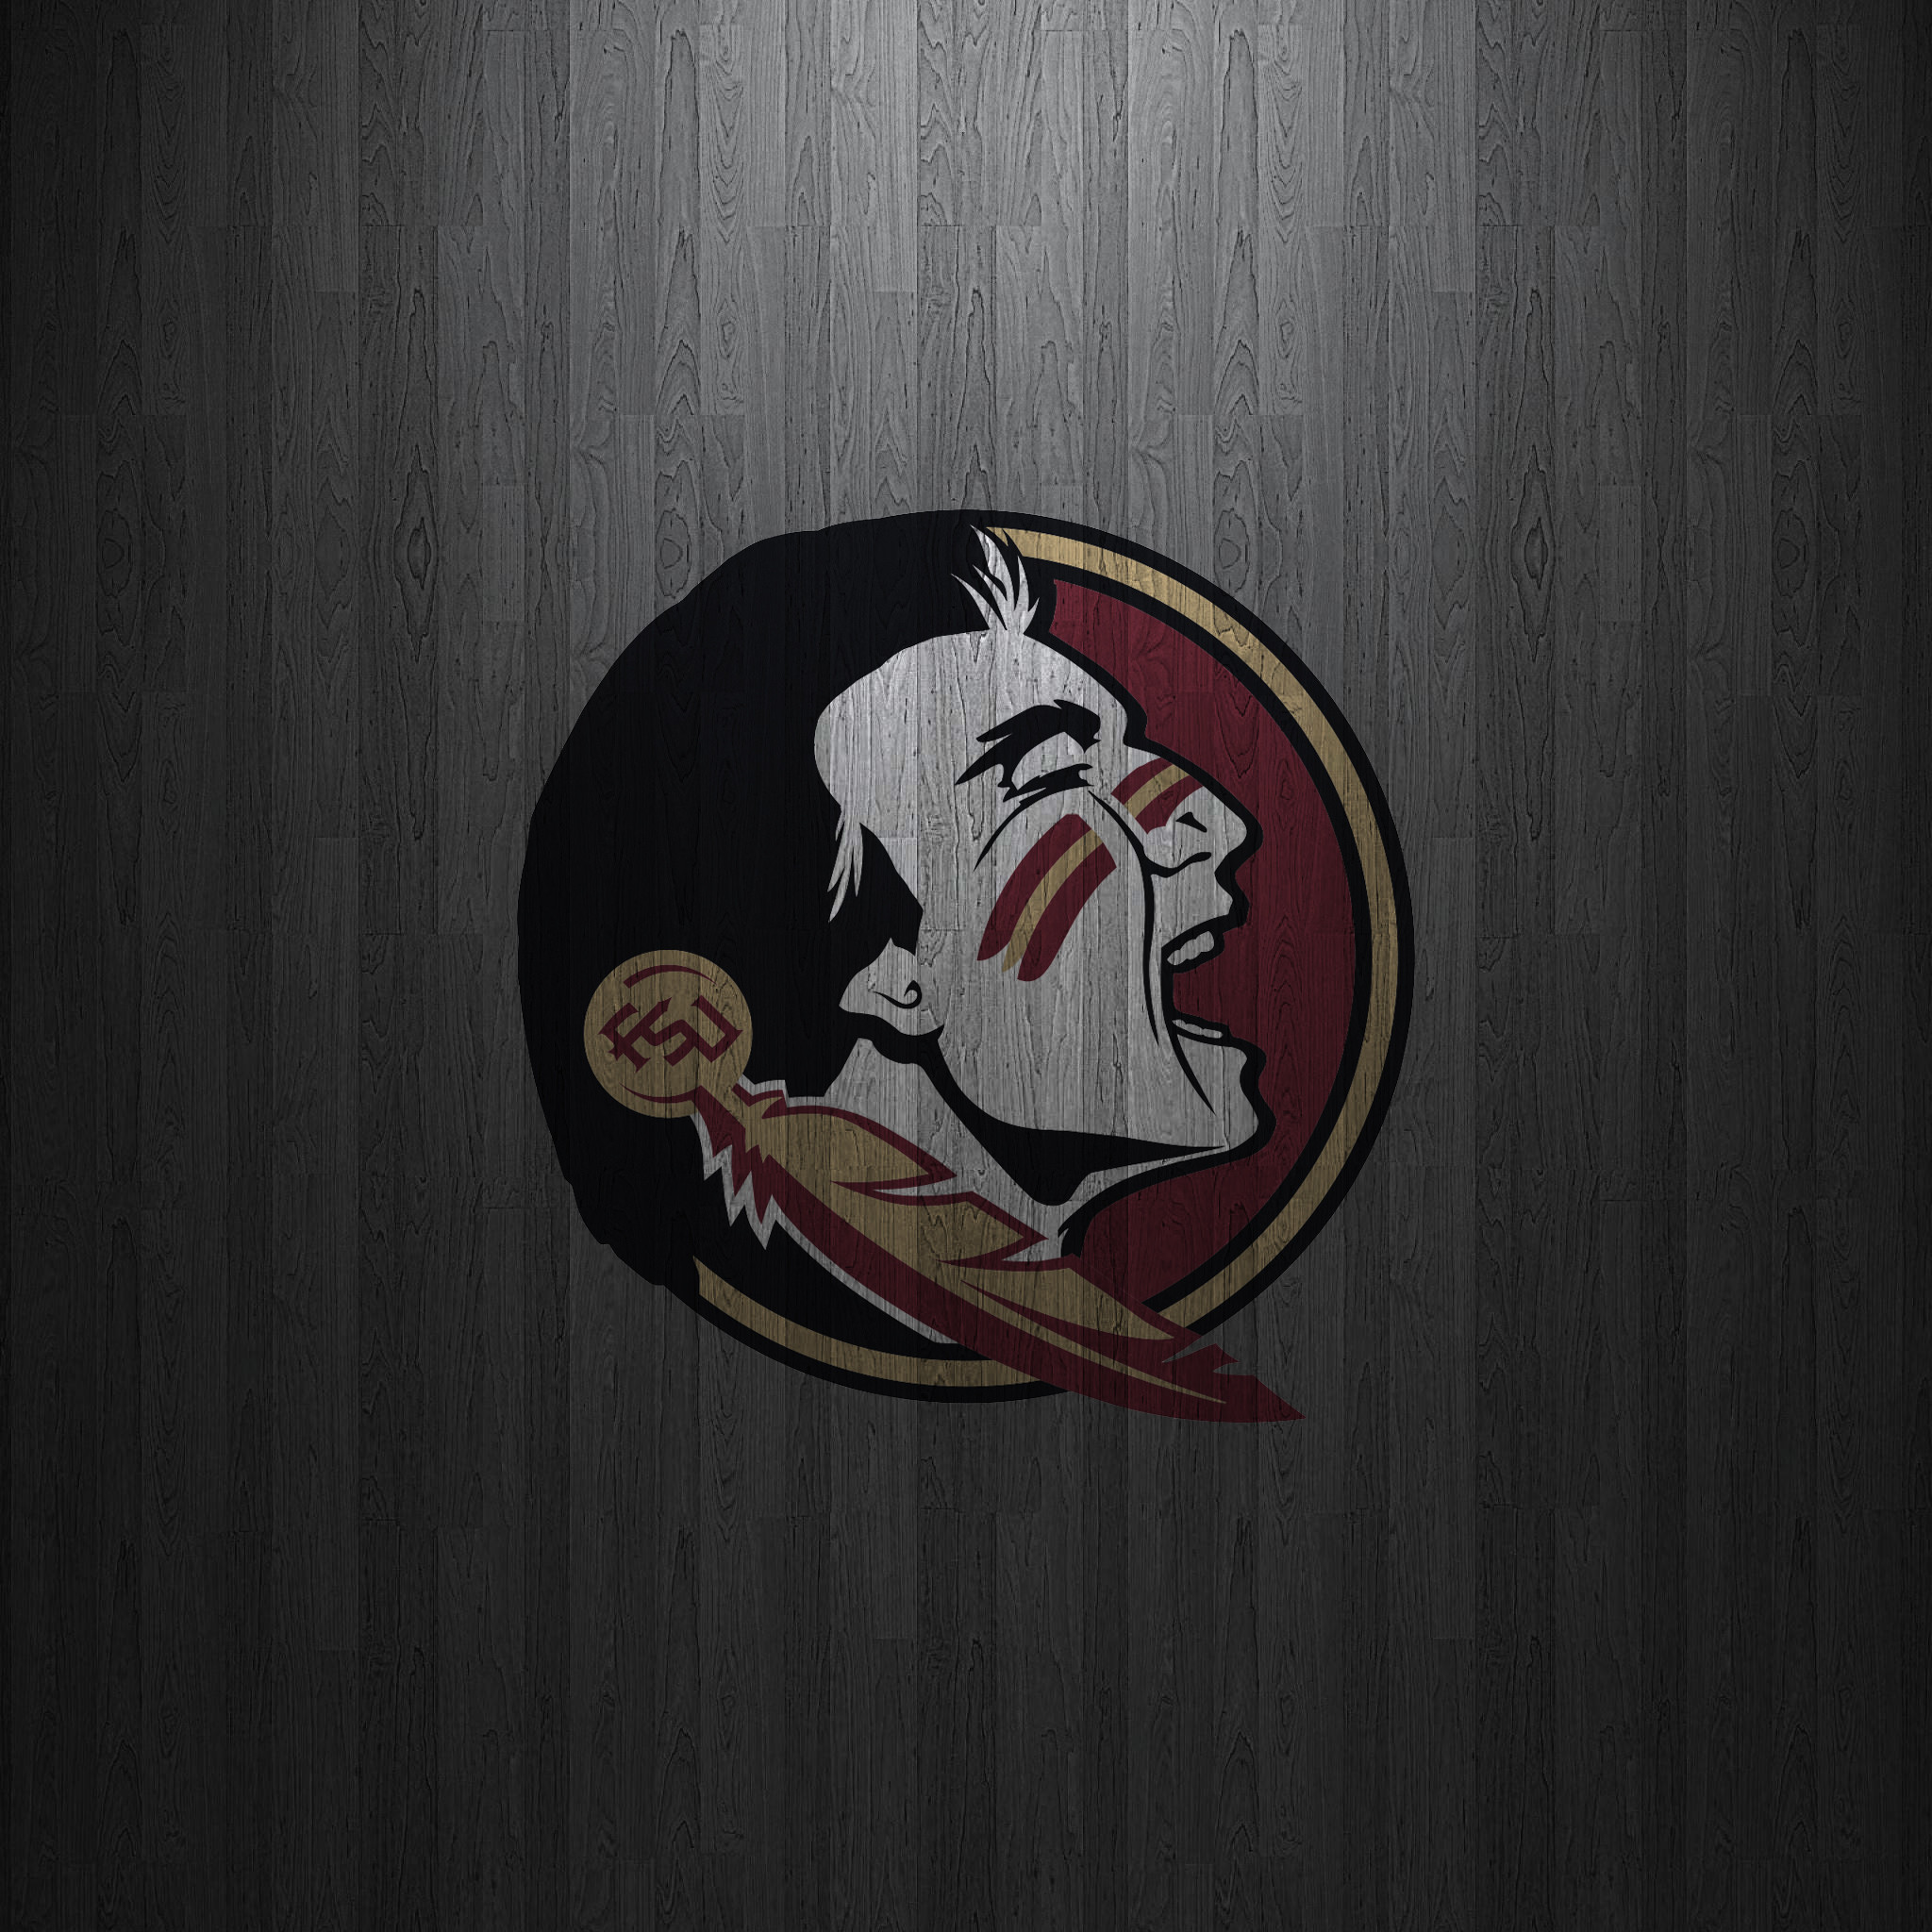 2048x2048 Florida State University Wallpapers